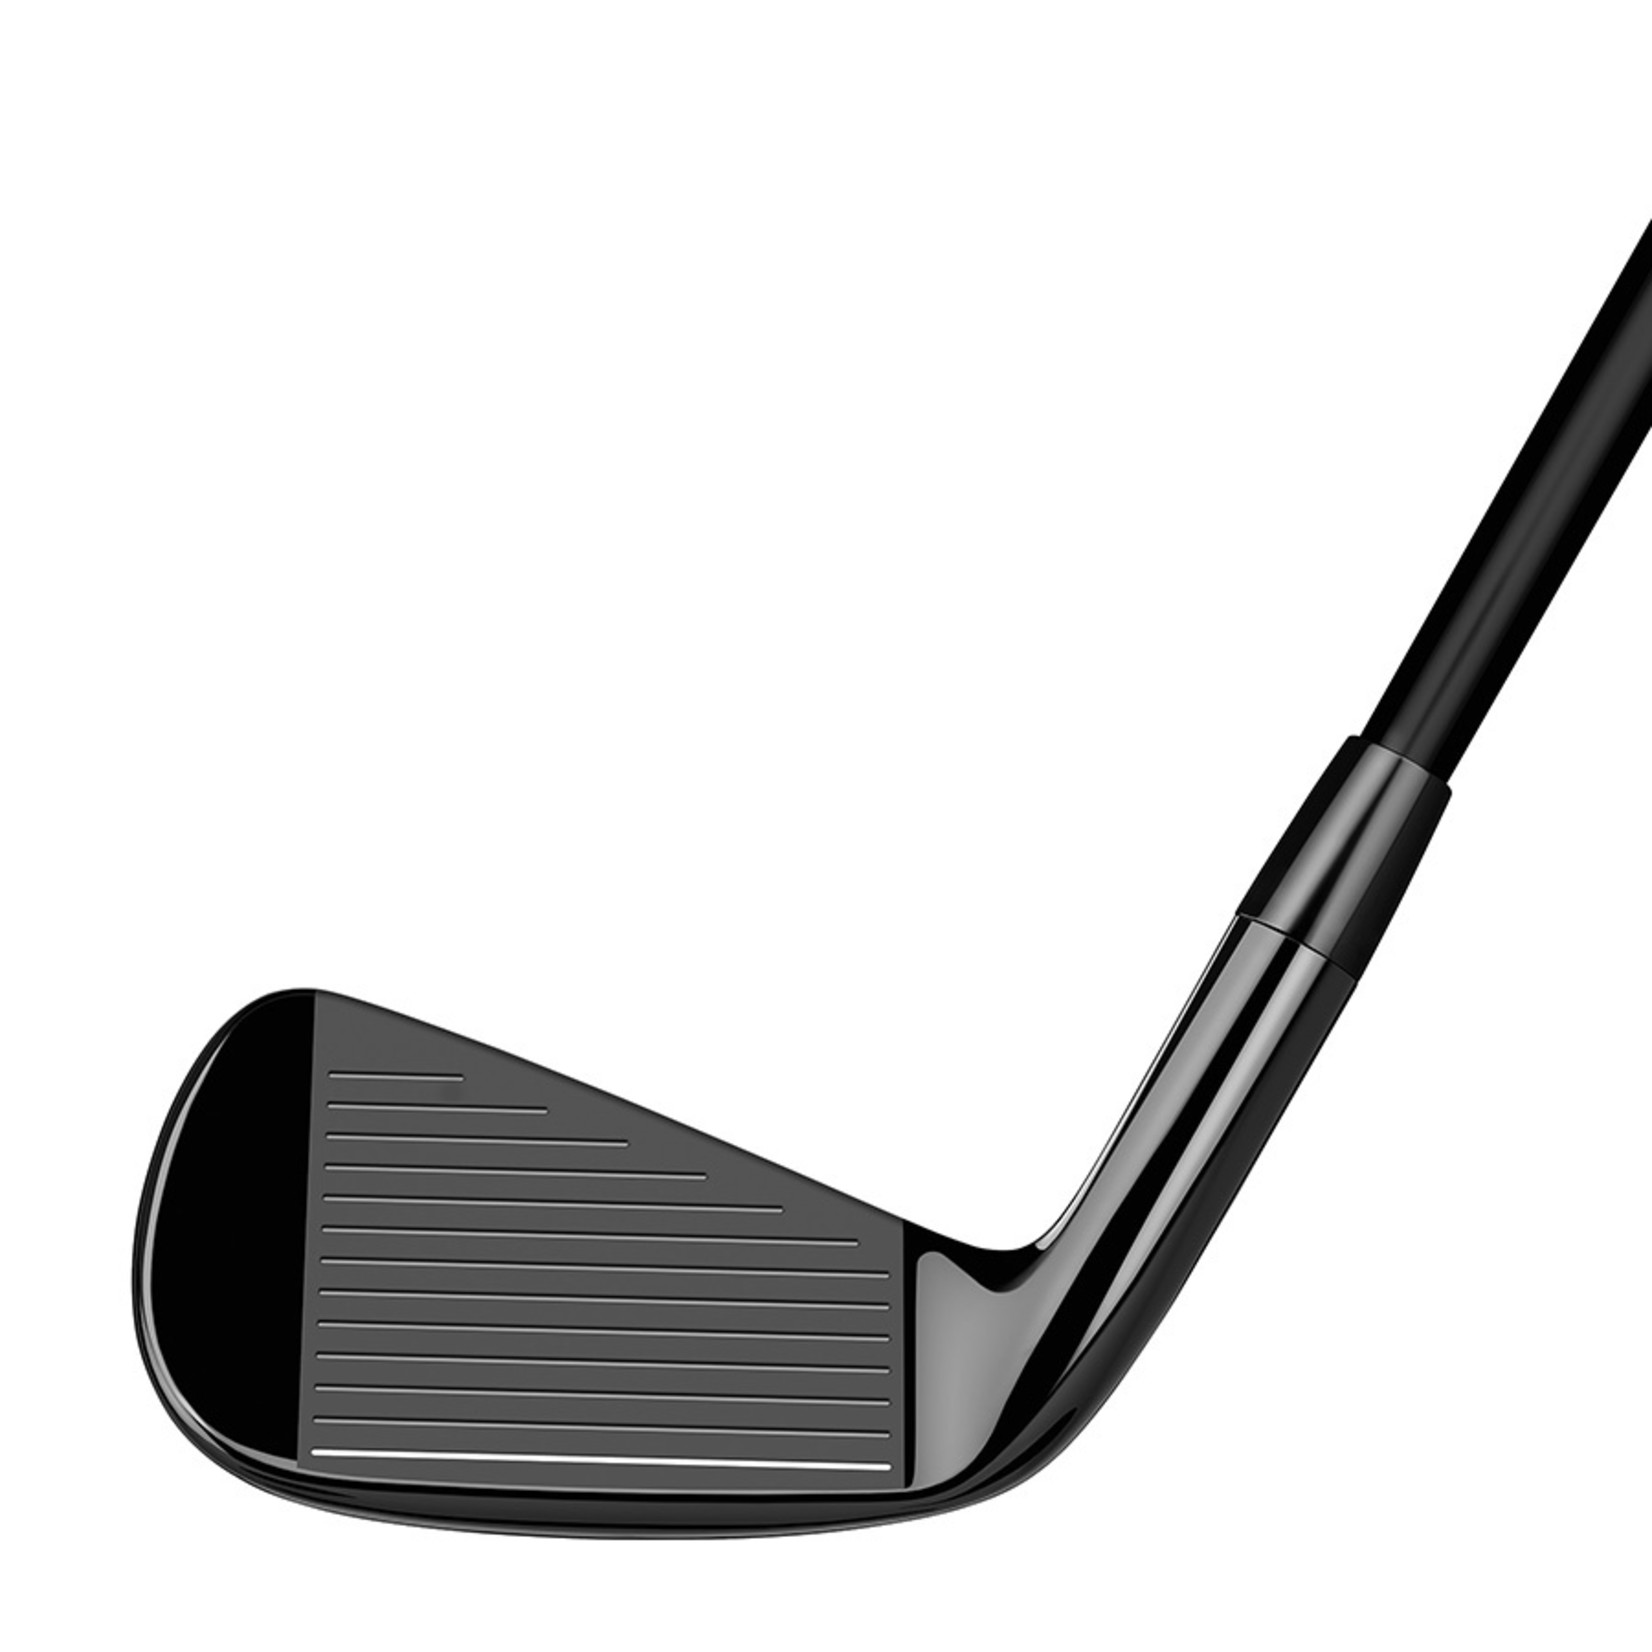 TaylorMade P790 (Black) Irons 7pc. - Steel Shafts